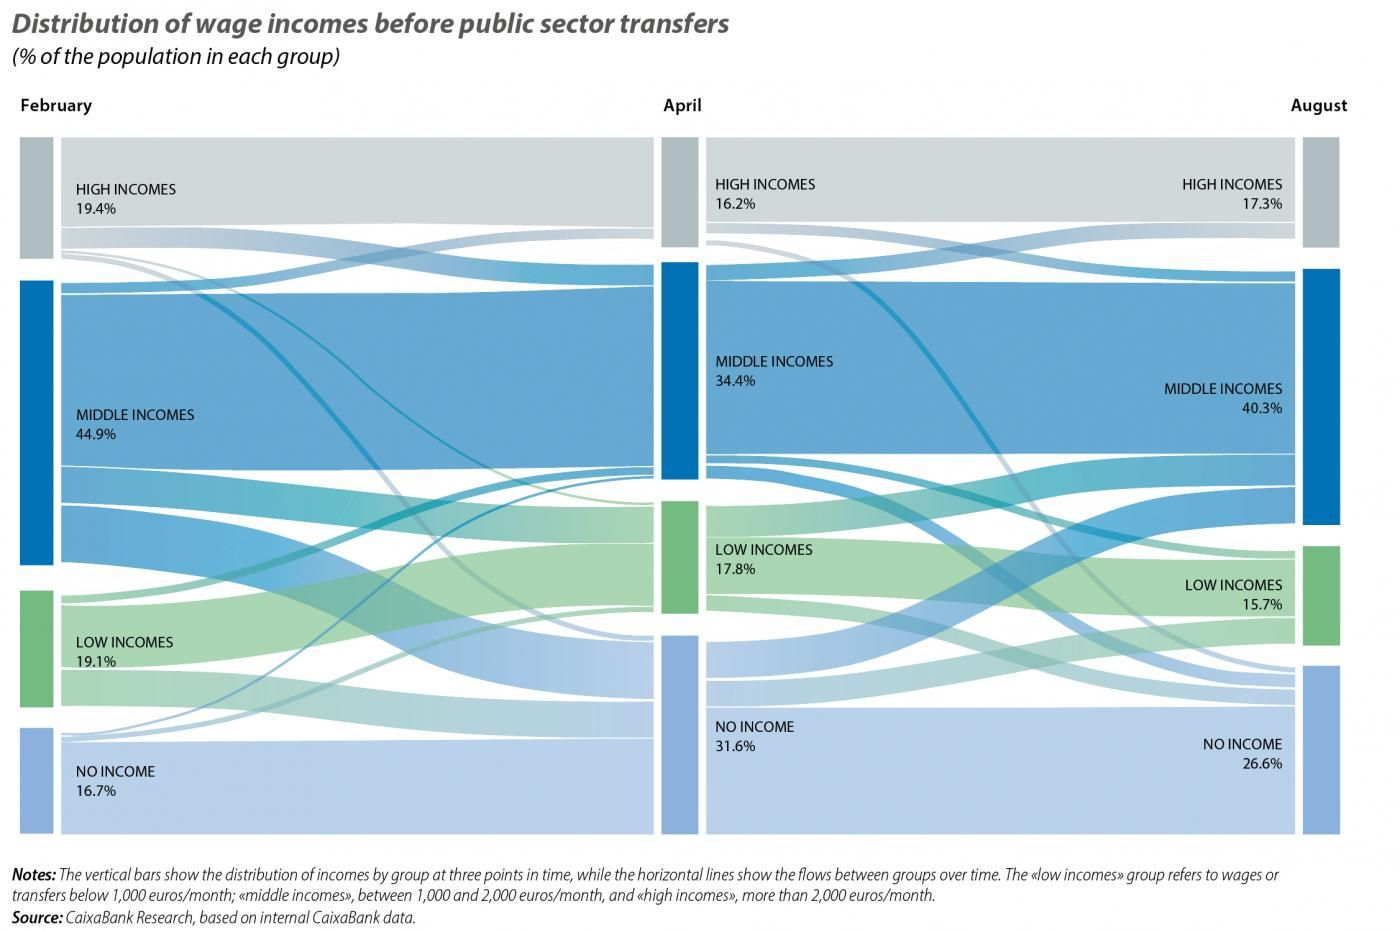 Distribution of wage incomes before public sector transfers